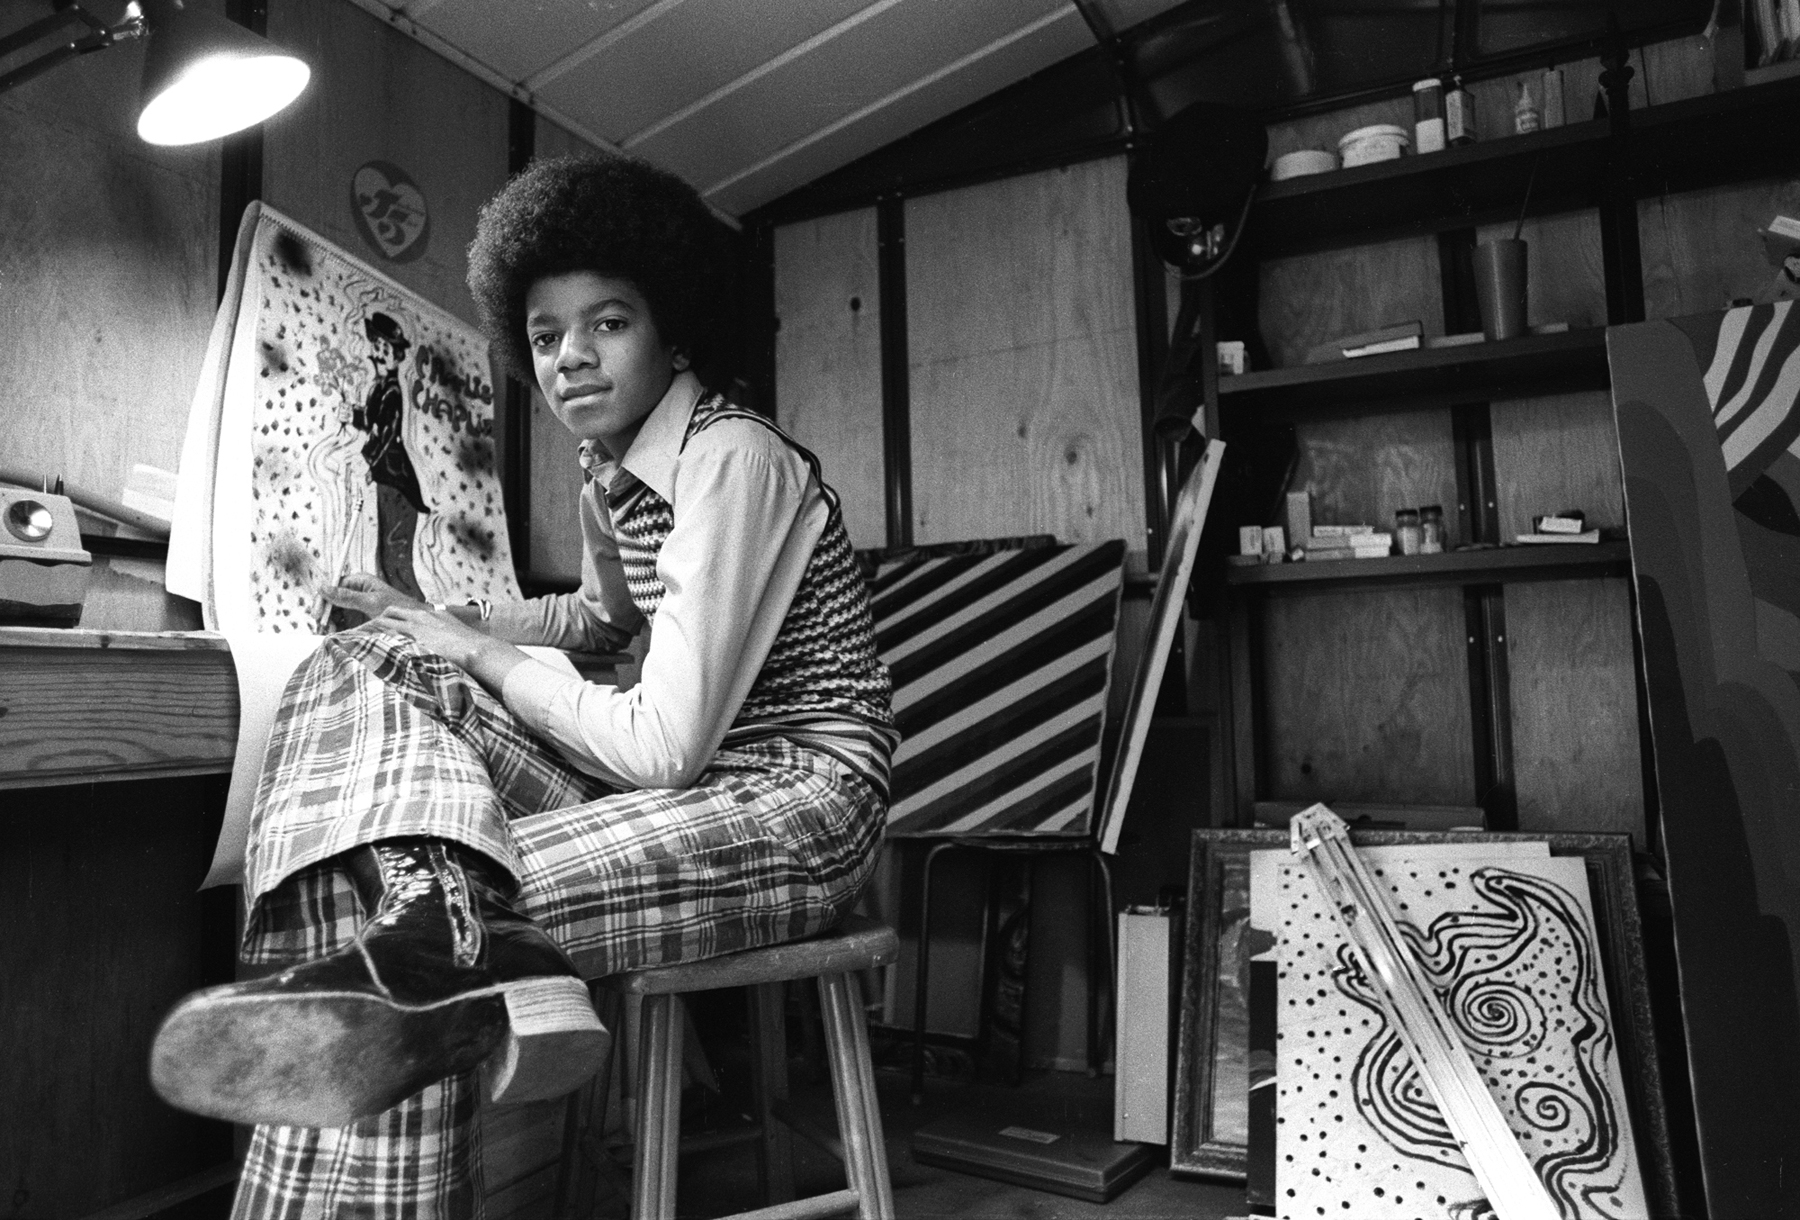 Michael Jackson: Intimate Photos From the King of Pop's Teenage Years